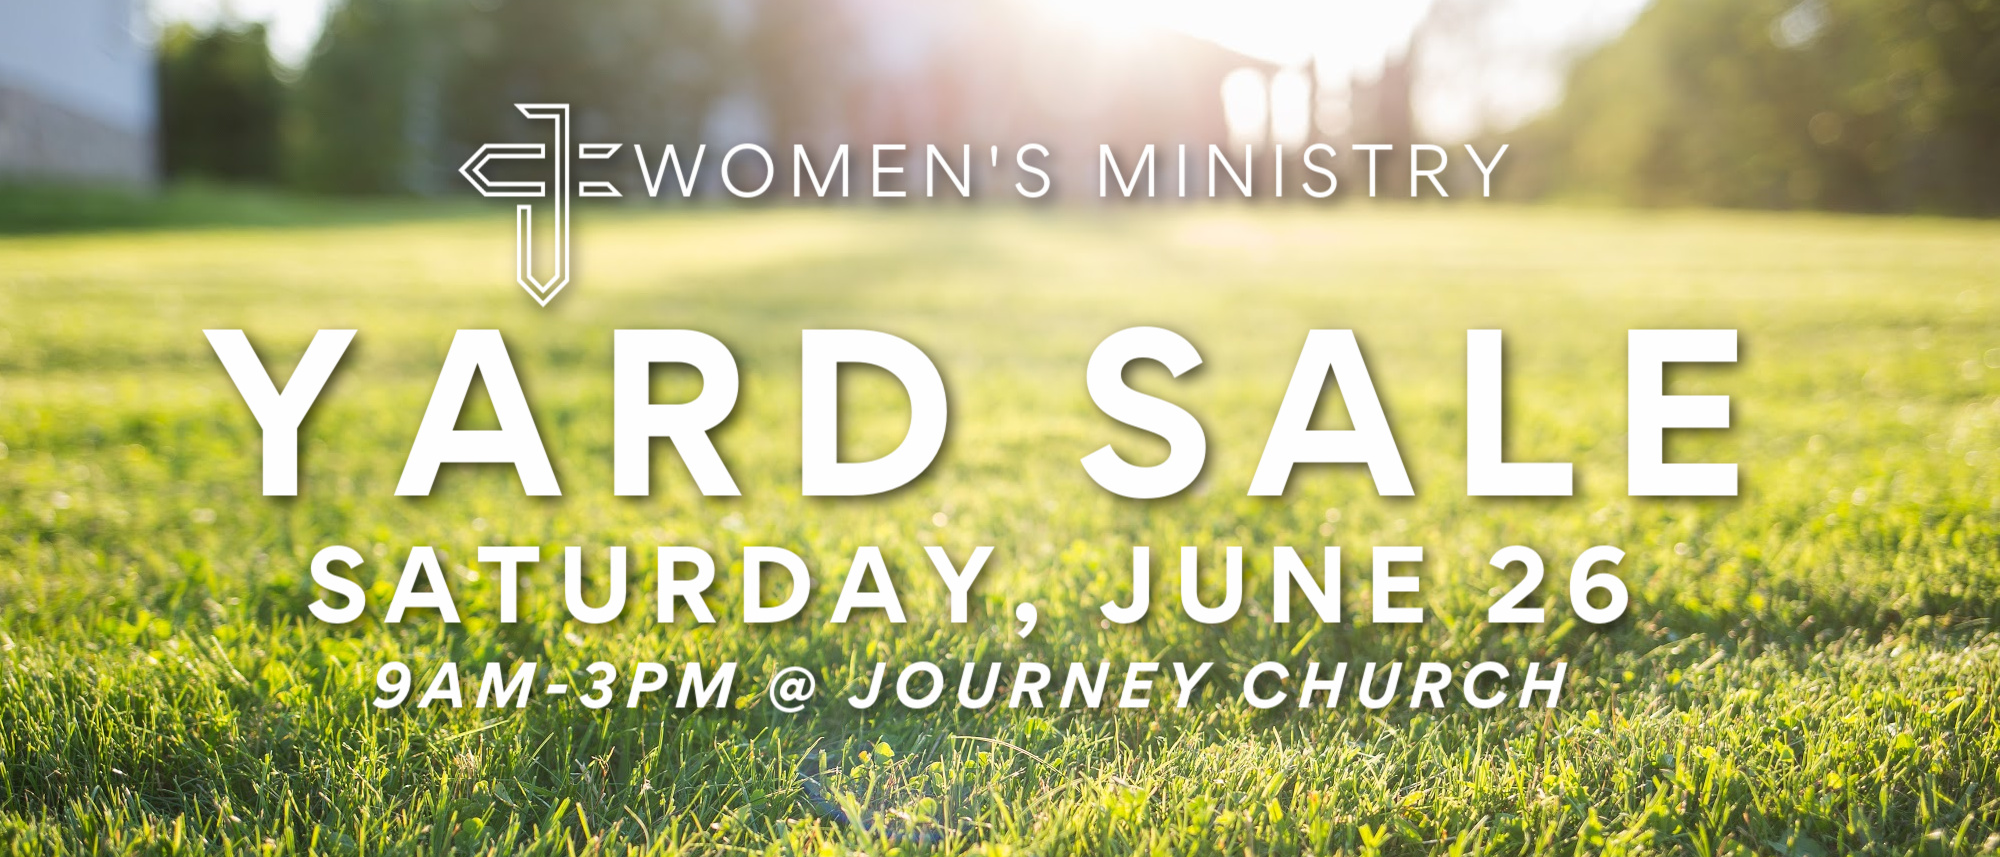 Yard Sale at Journey Church on June 26